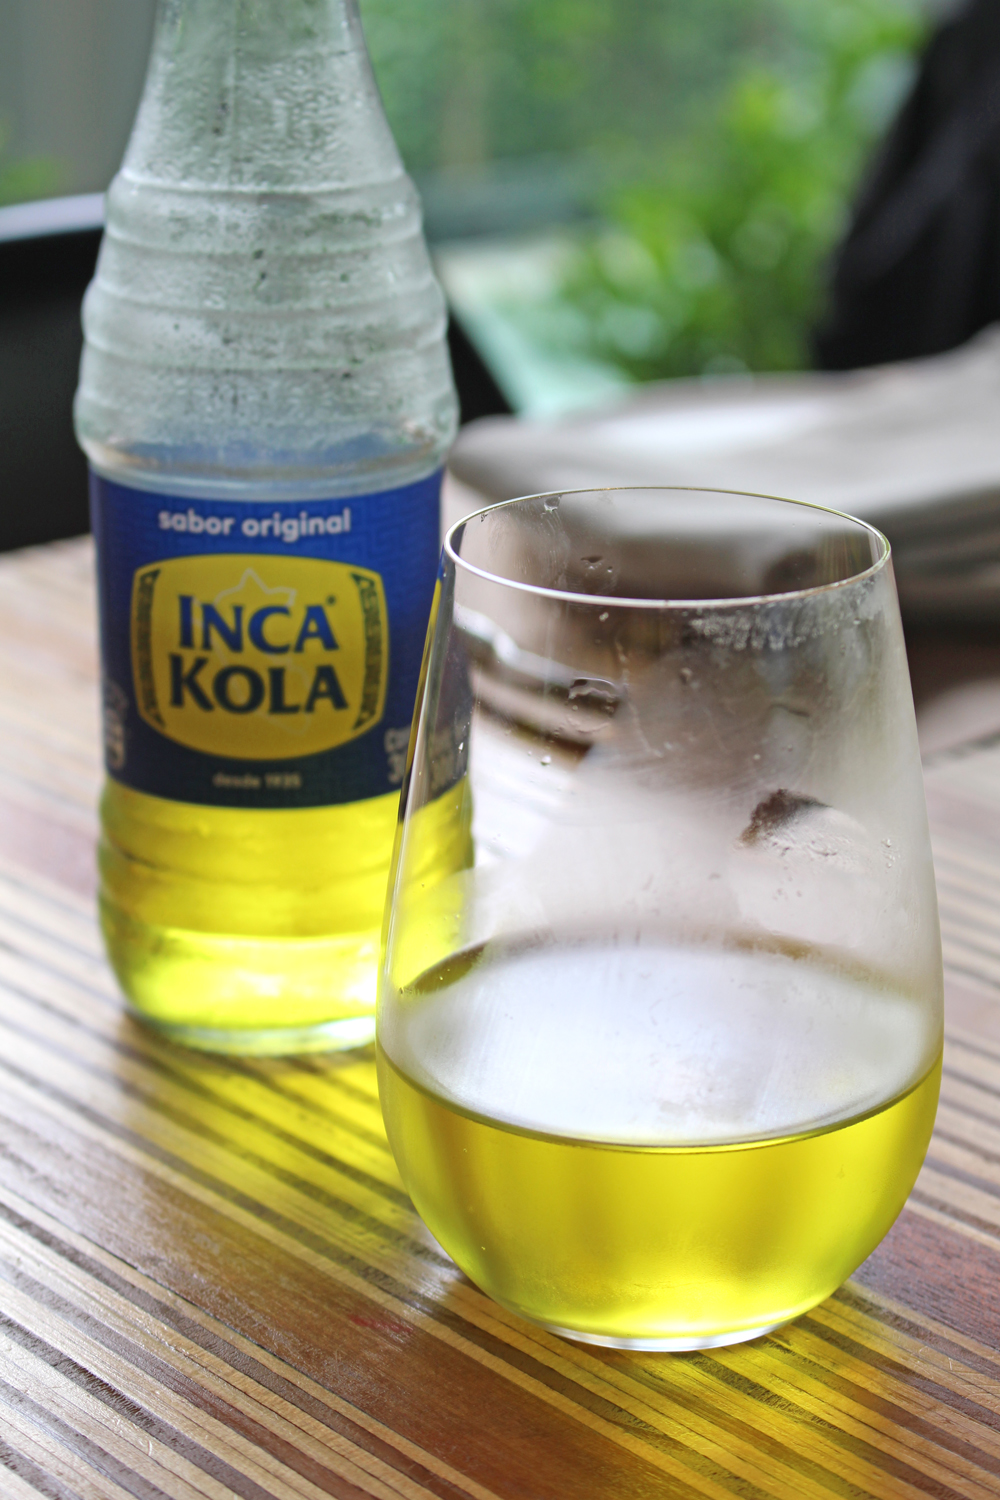 Inca Kola yellow drink in Lima, Peru - travel & lifestyle blog